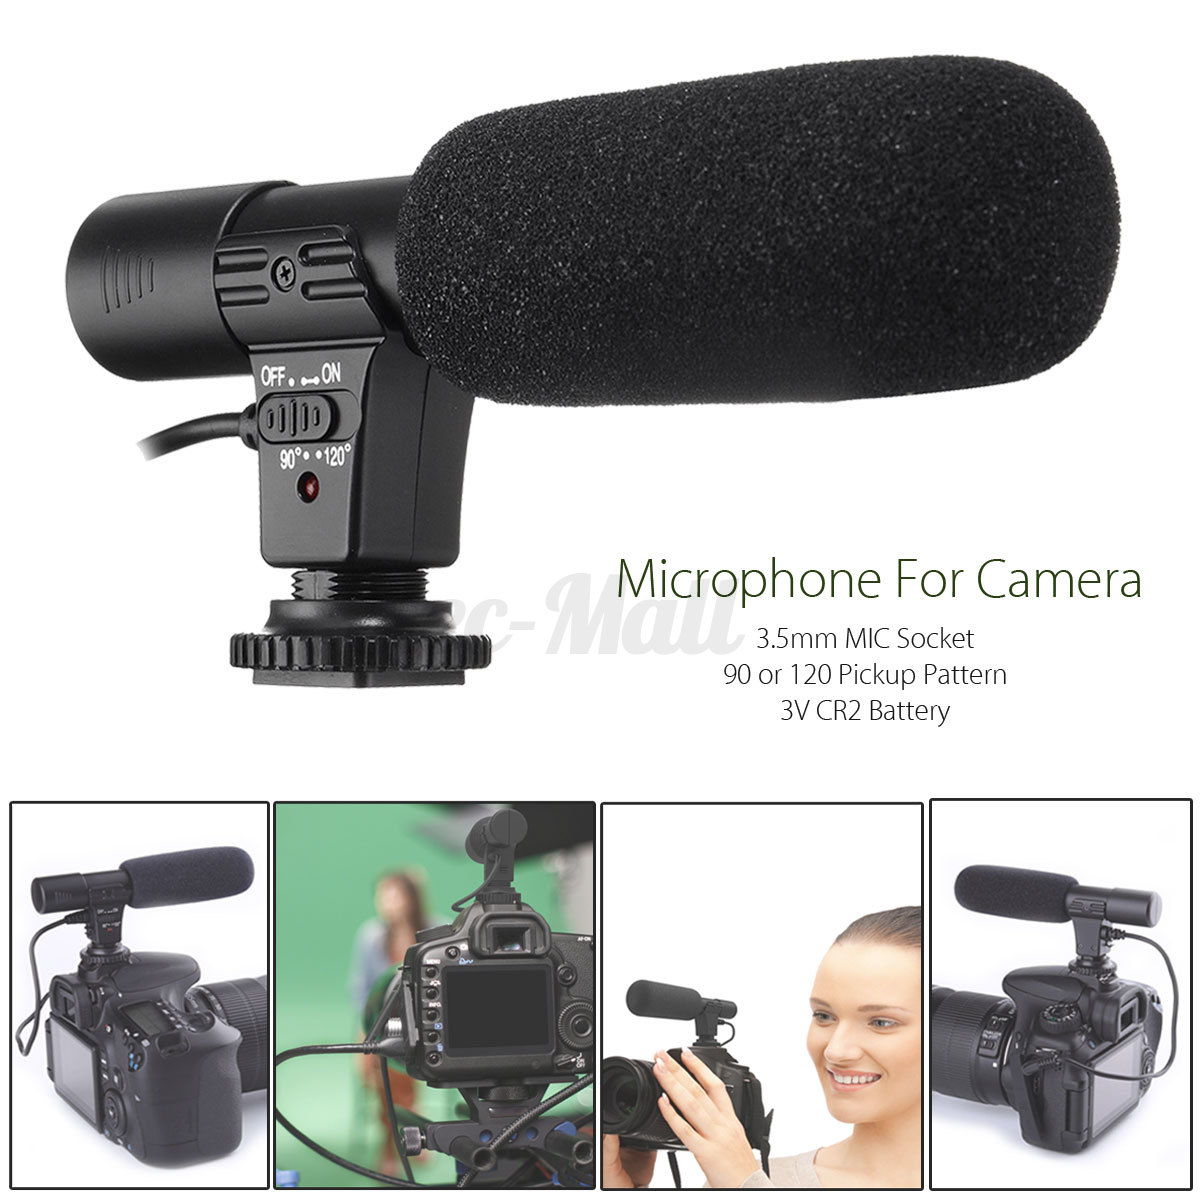 35mm External Stereo Microphone For Canon Nikon Dslr Camera Dv Boya By M1 Clip On Mic Sony Kamera Universal Video Camcorder Iphone 1 Of 11free Shipping